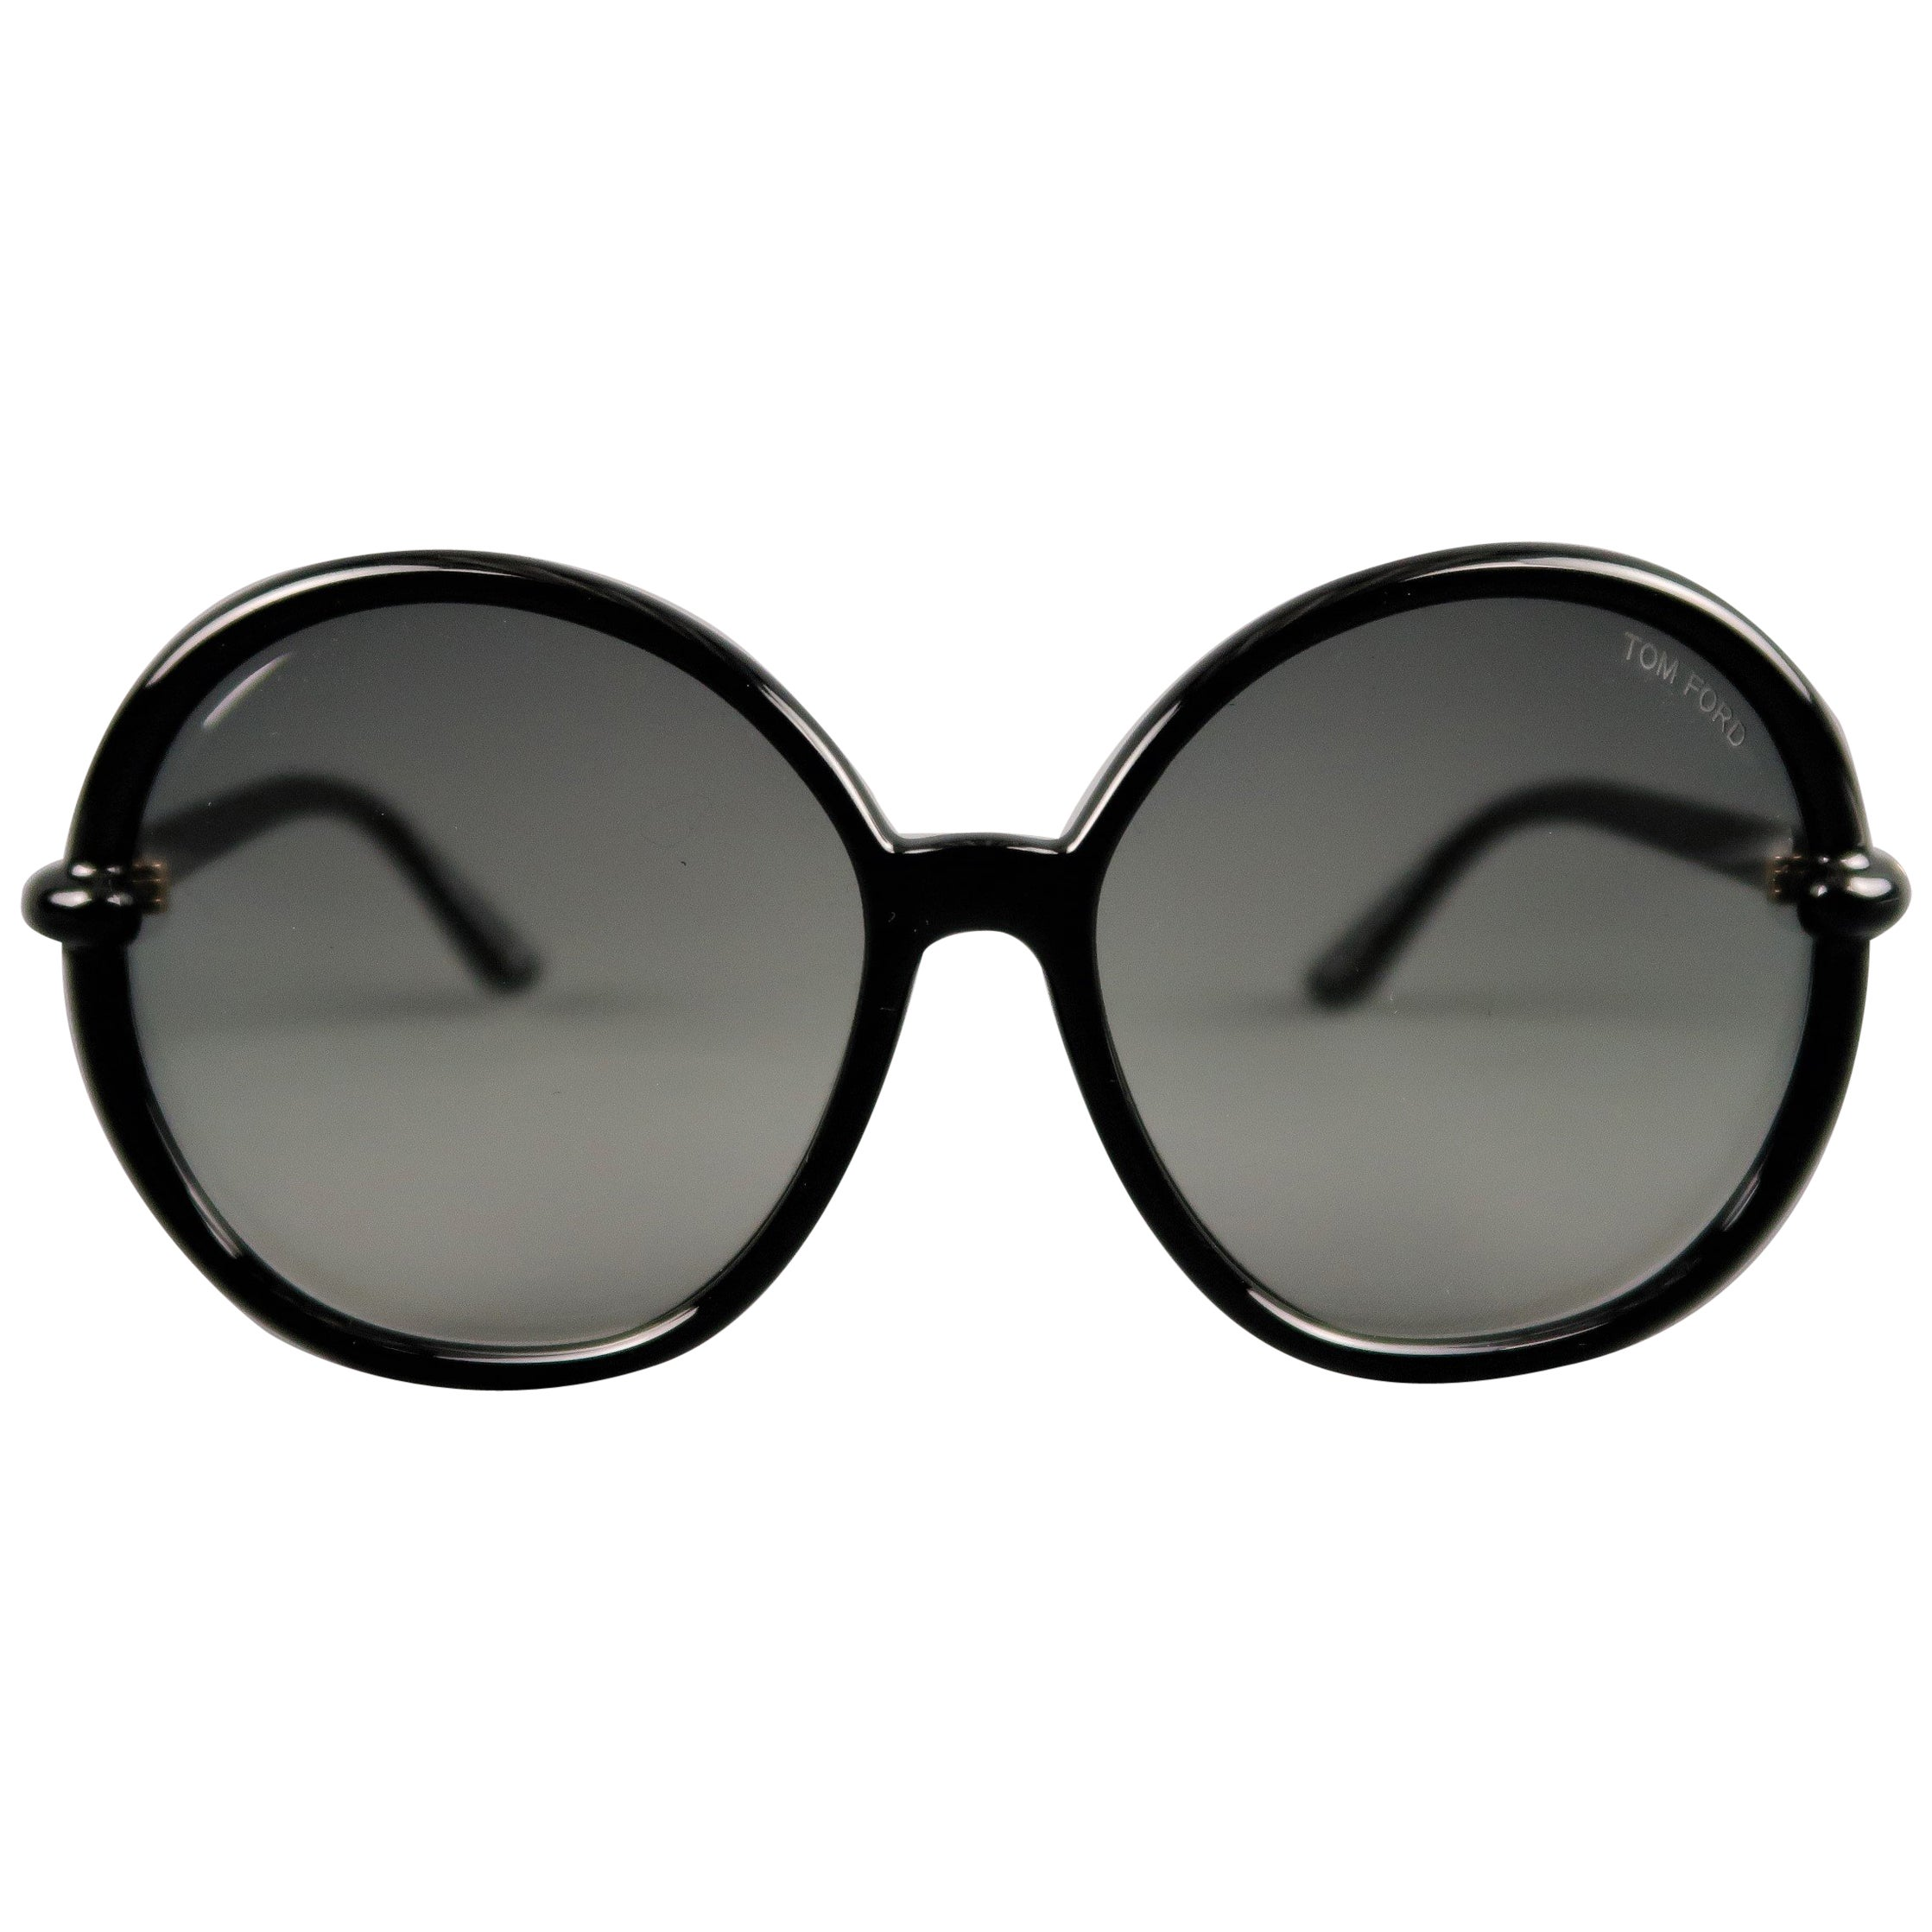 45b53f227d533 TOM FORD Black Round Ombre Lens CAITHLYN Sunglasses at 1stdibs